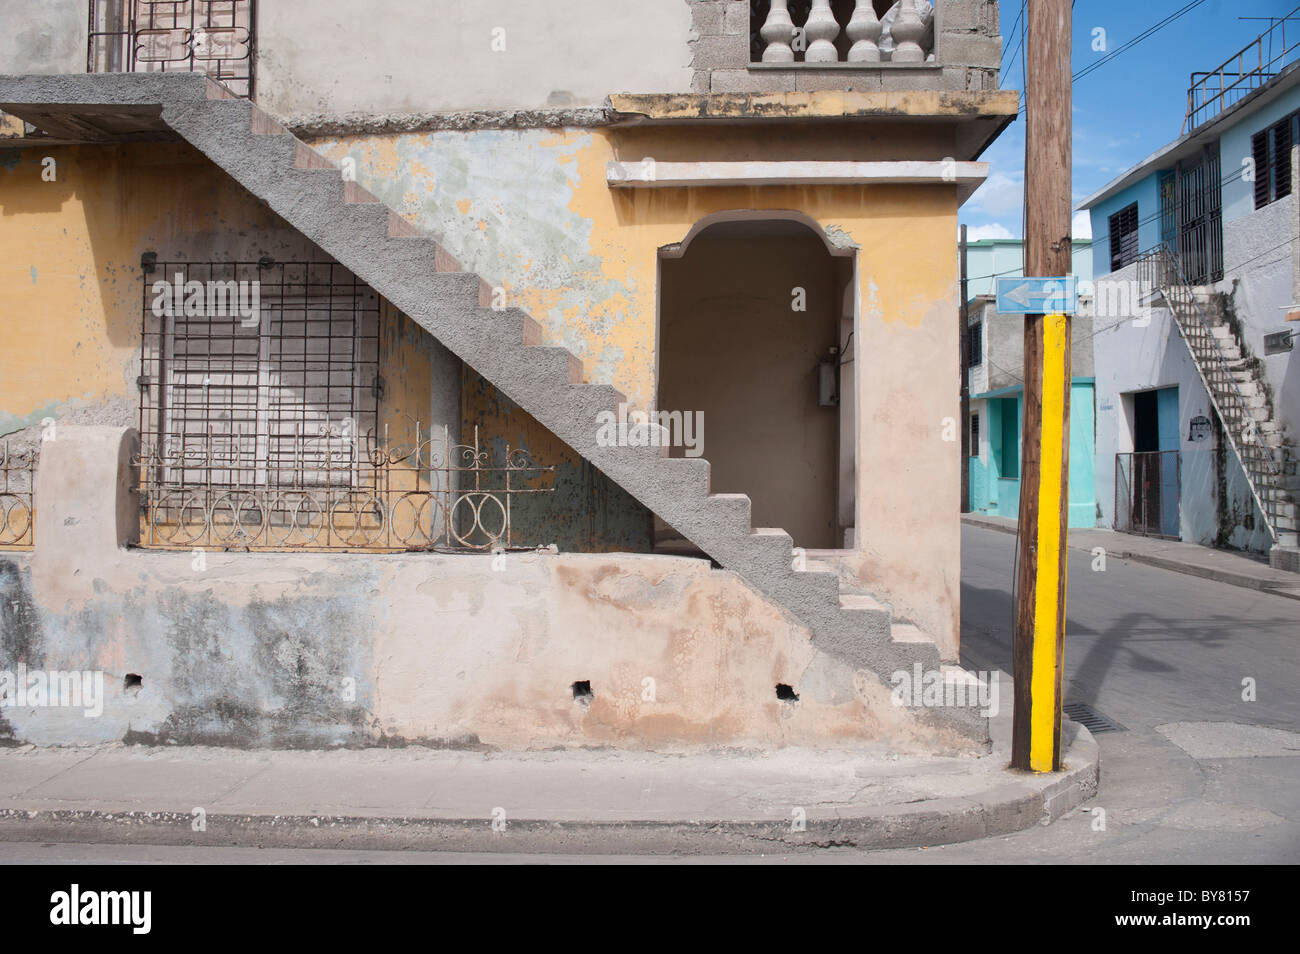 View Of Stairs Outside A House In Cuba Stock Photo 33982627 Alamy